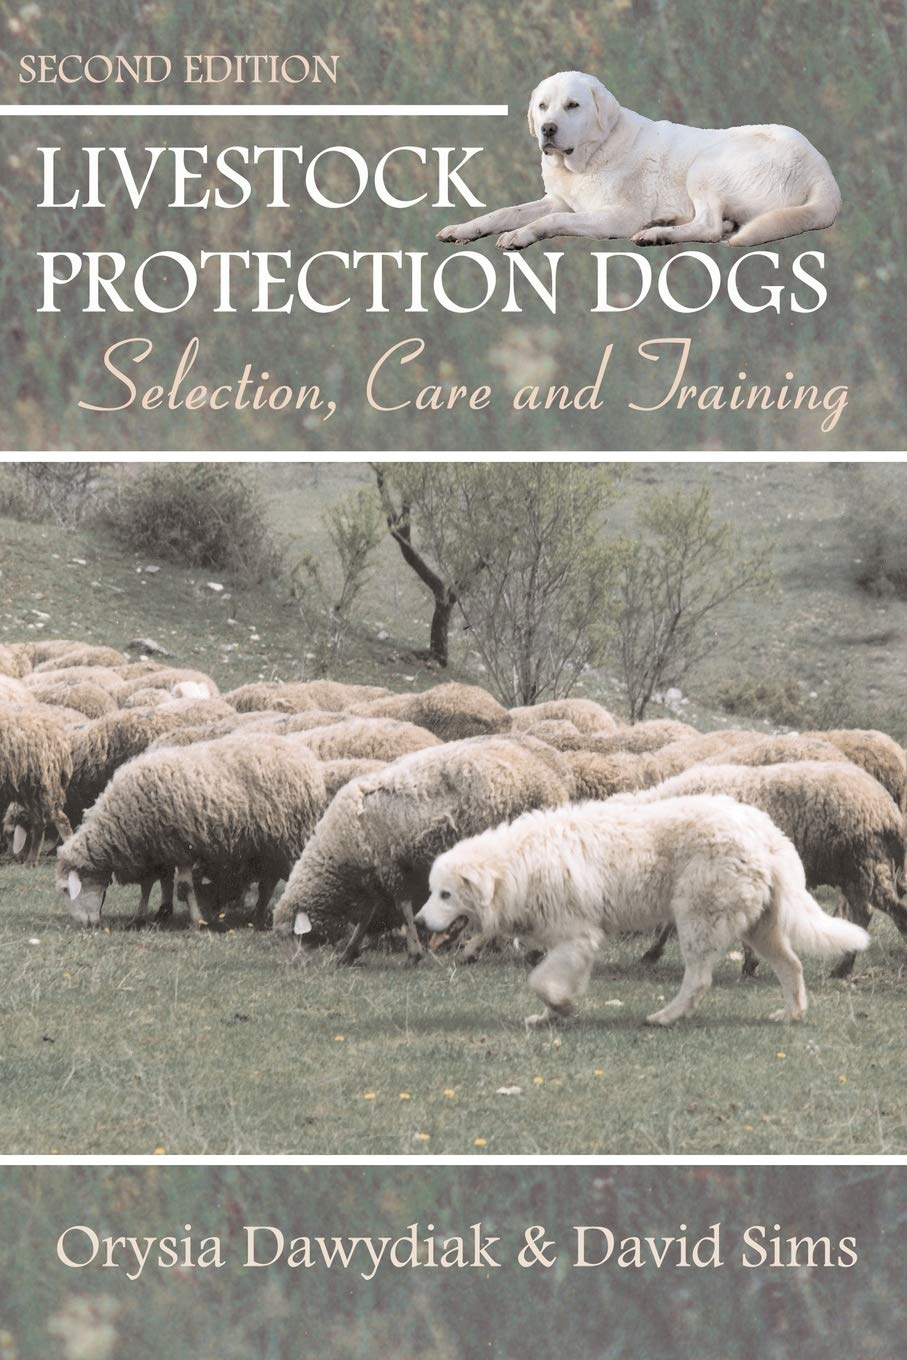 Livestock Protection Dogs: Selection, Care and Training